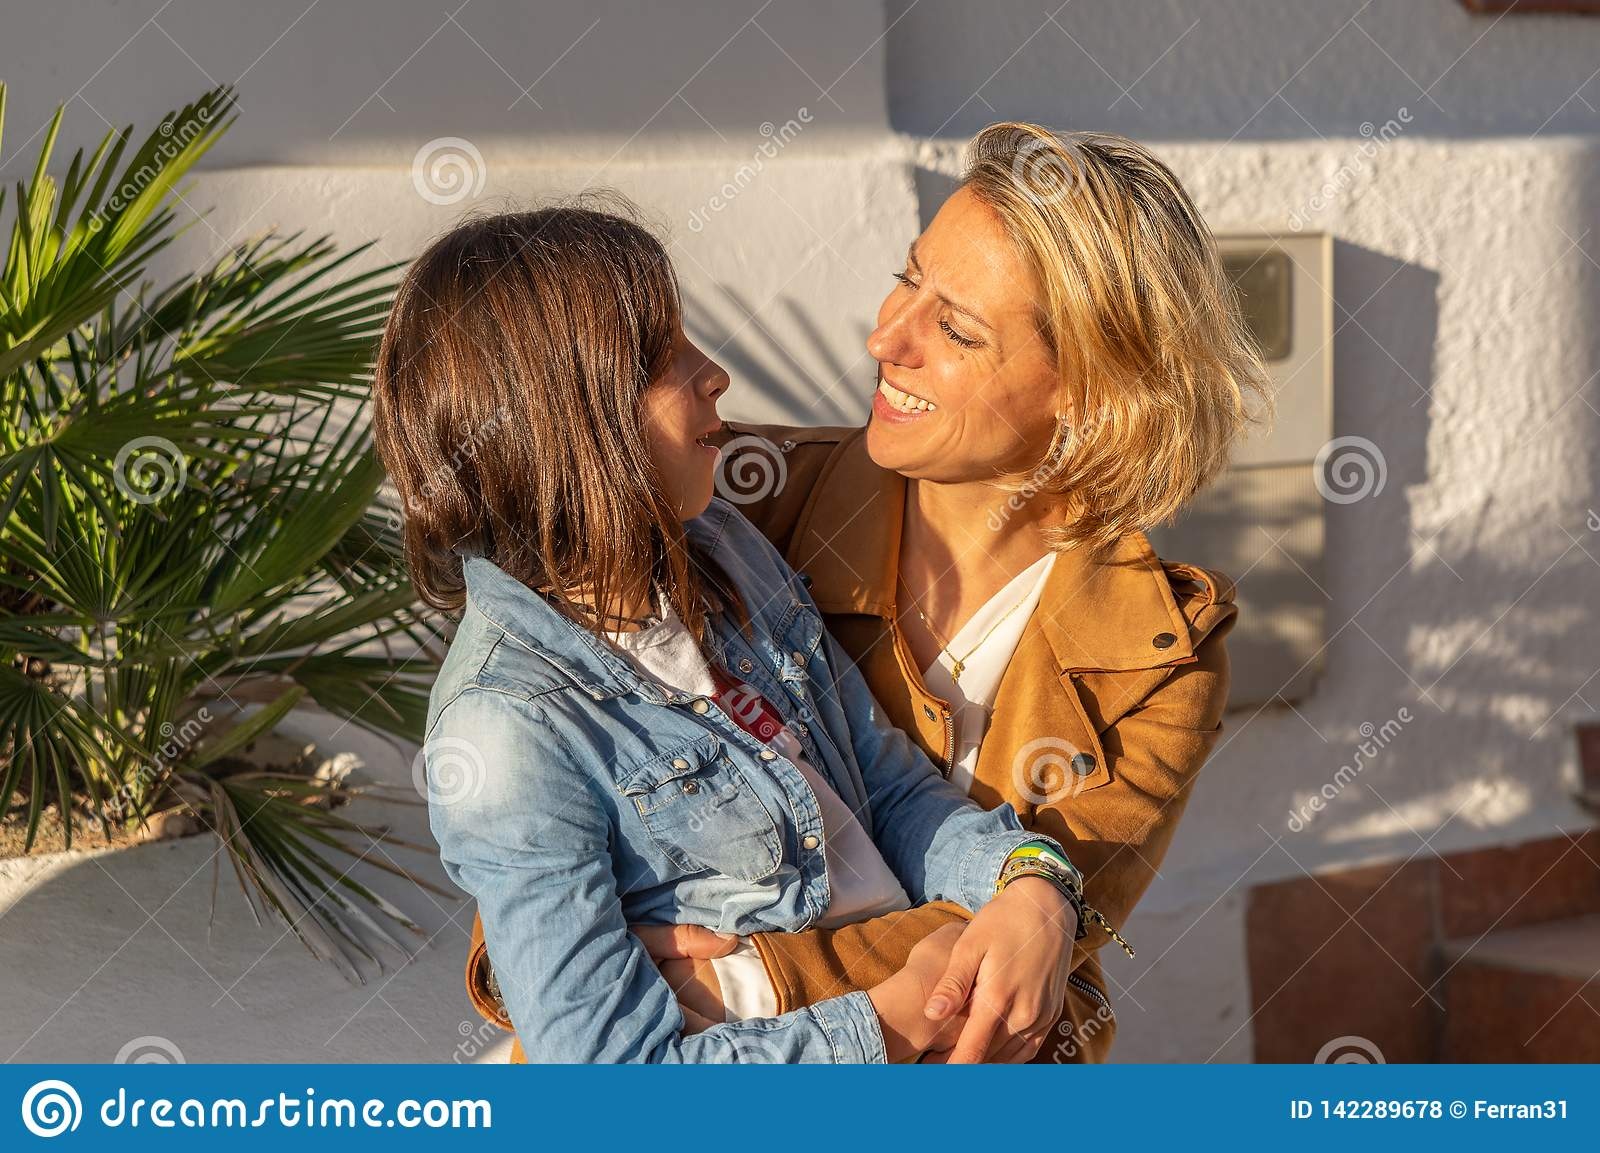 Mother and daughter hugging each other in mediterranean coastal town